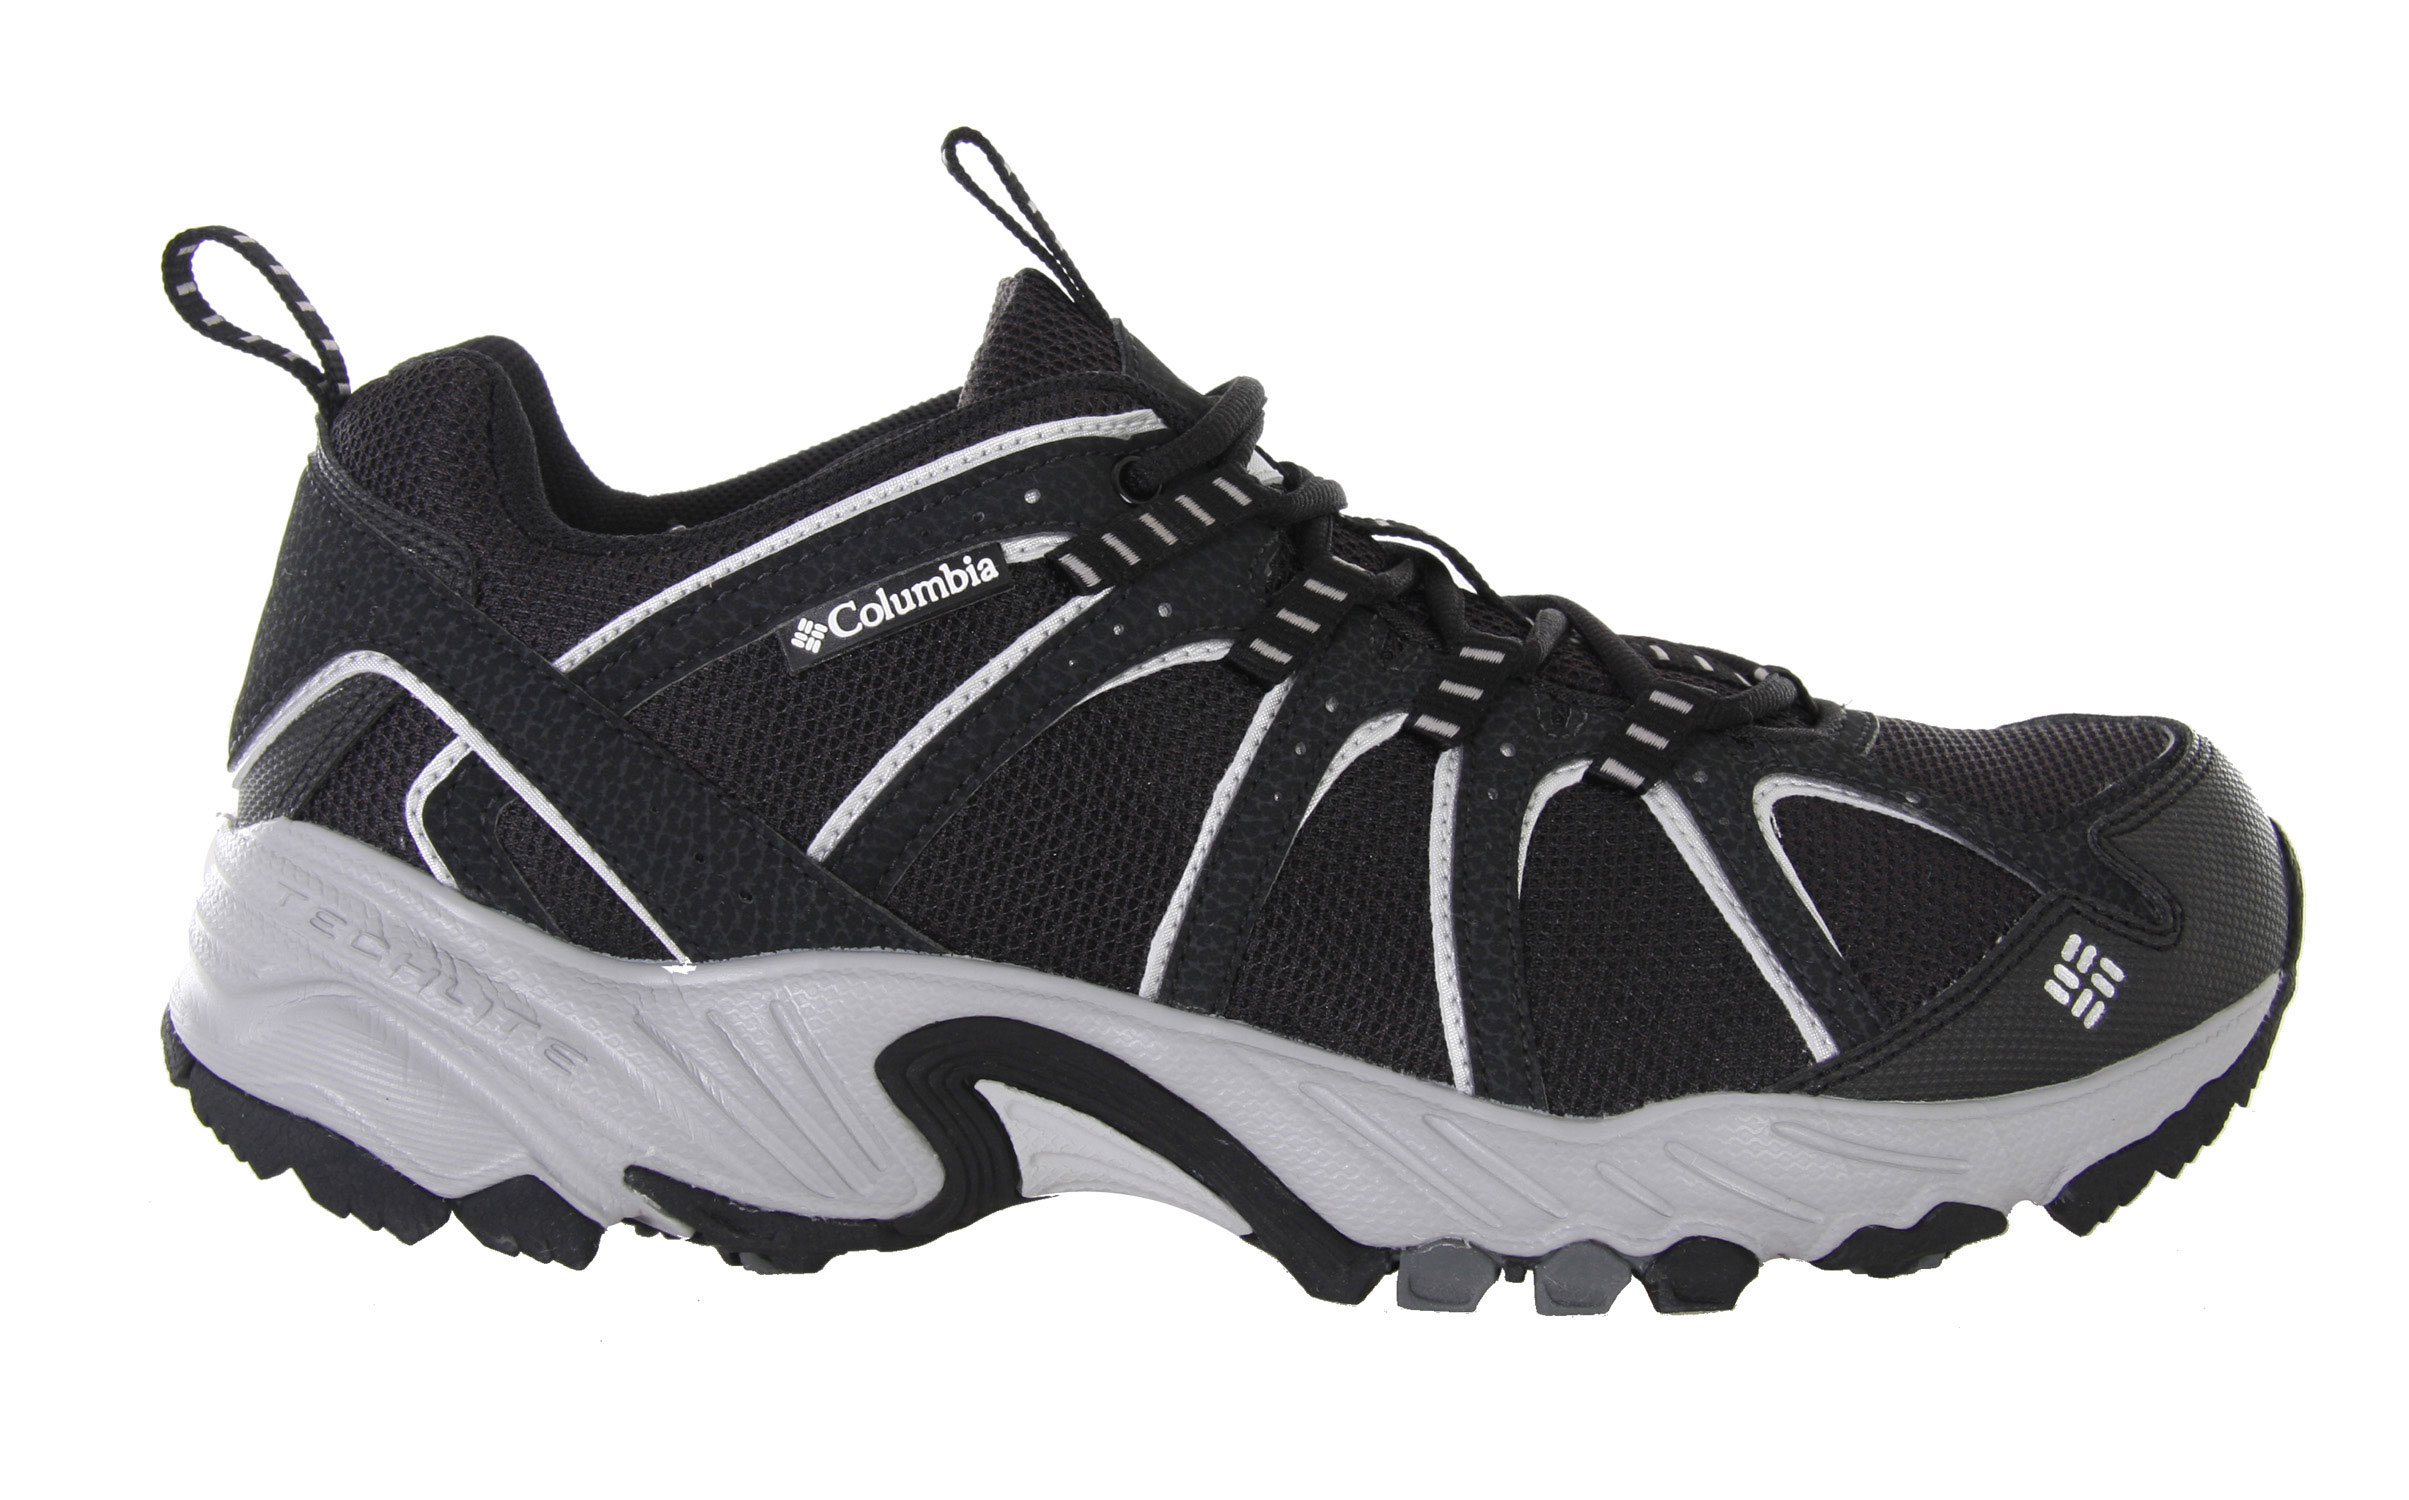 Camp and Hike A fantastic value, the Kaibab is the go-anywhere, do-anything answer to your everyday adventure footwear needs.This shoe is flexible, light and well-supported - perfect for trail running and hiking but low-profile enough for general everyday use. The breathable mesh upper helps you stay cool when you're on the move and a gusseted tongue keeps out unwanted debris. A women's-specific last accommodates a narrower foot for fantastic fit. Ample padding protects and cushions your feet while a rugged non-marking outsole with a trail-specific design provides stability as you move over uneven surfaces. Key Features of the Columbia Kaibab Hiking Shoes: Breathable mesh upper supported by light and flexible overlays Gusseted tongue to keep out unwanted debris Molded rubberized EVA with nylex top cover Compression molded EVA Nylon shank Non-marking Omni-Grip rubber compound with a rugged trail design Weight: Size 7, 1/2 pair = 10.6oz/300g - $48.95